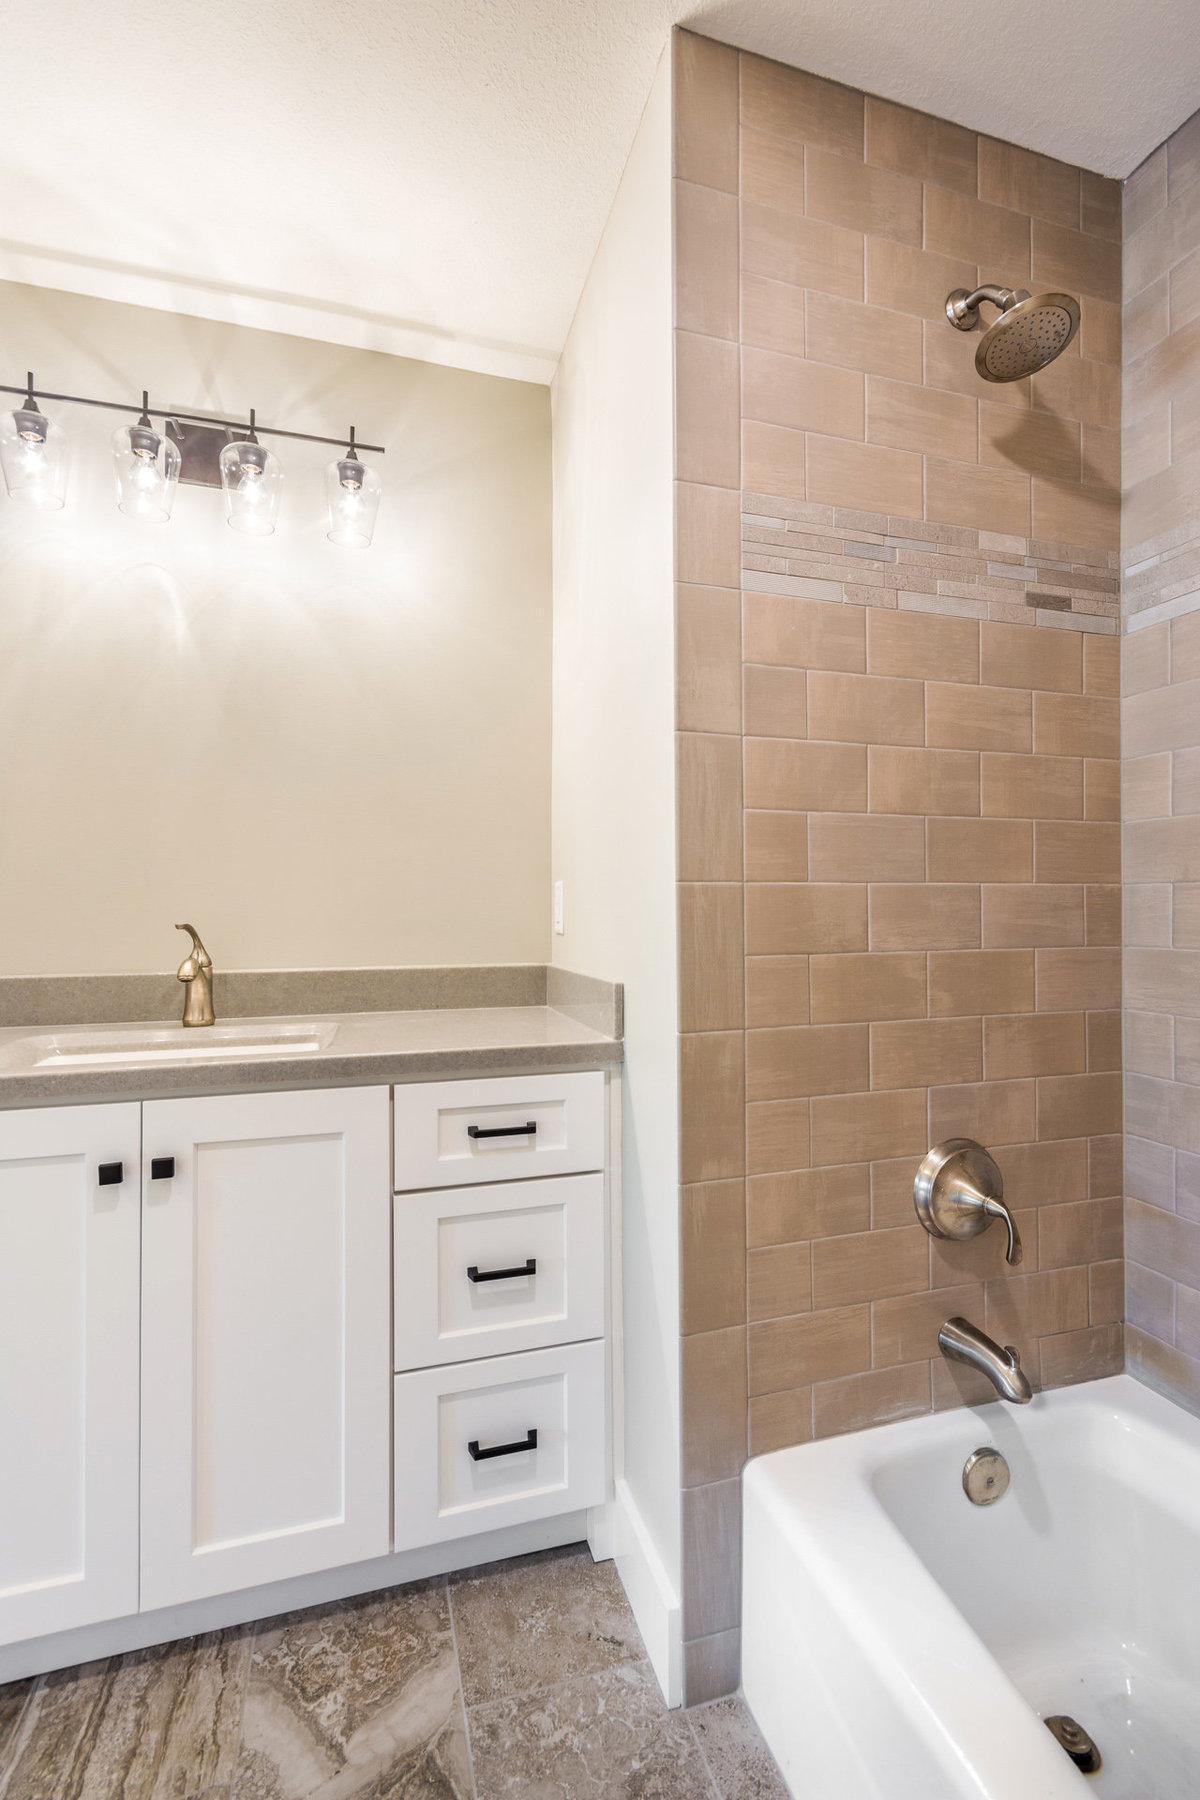 2017-08-10_153Bethany_Duell-remodel_bath2